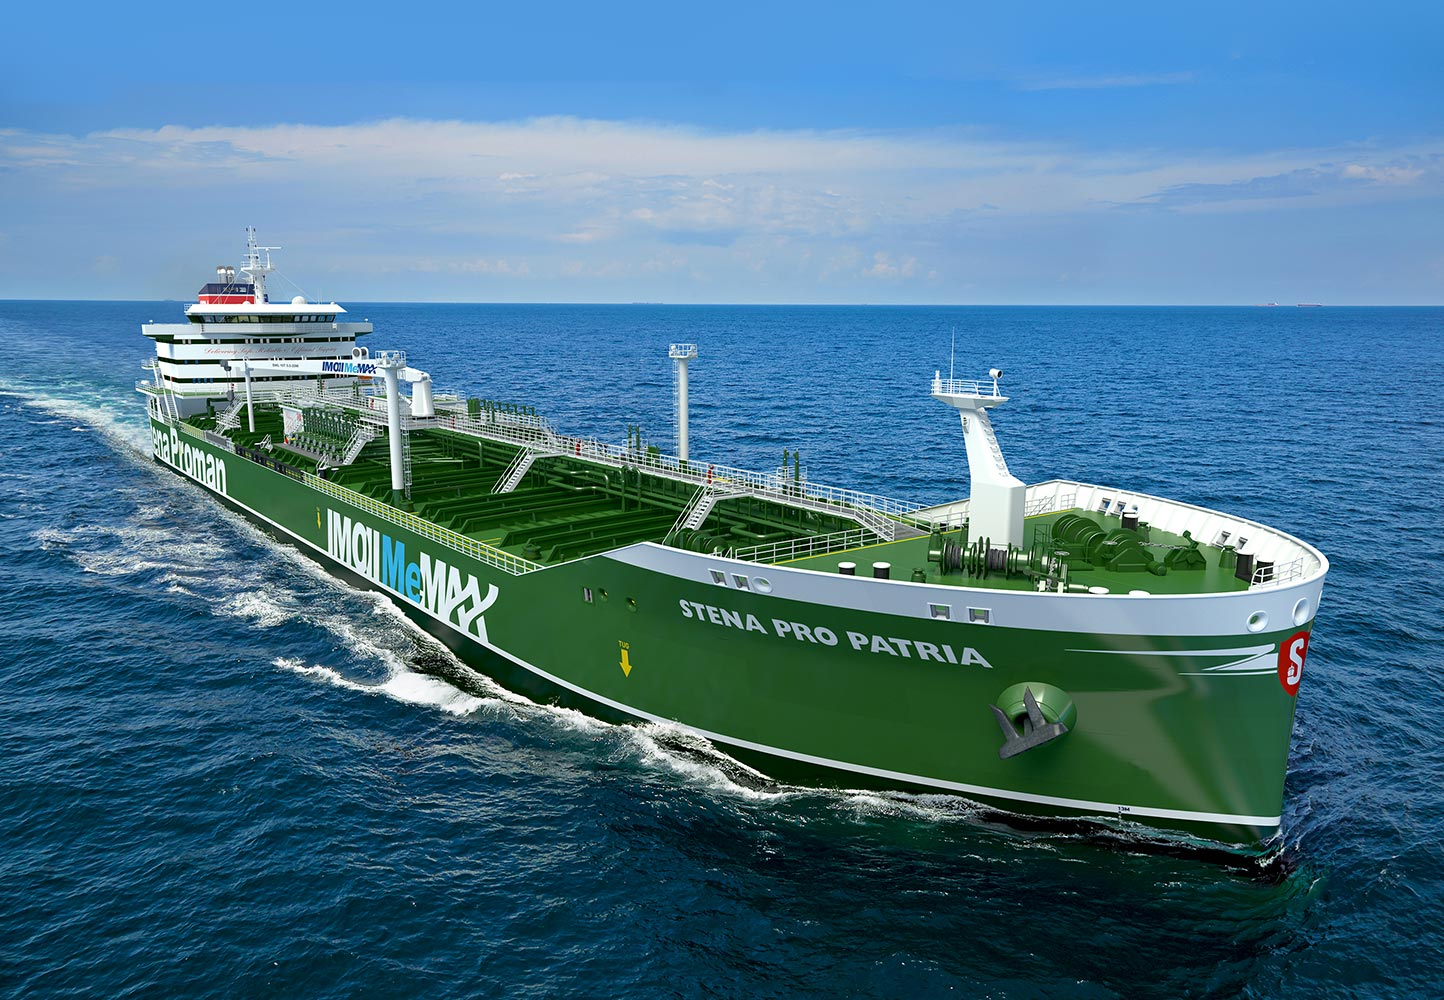 Large green vessel at sea